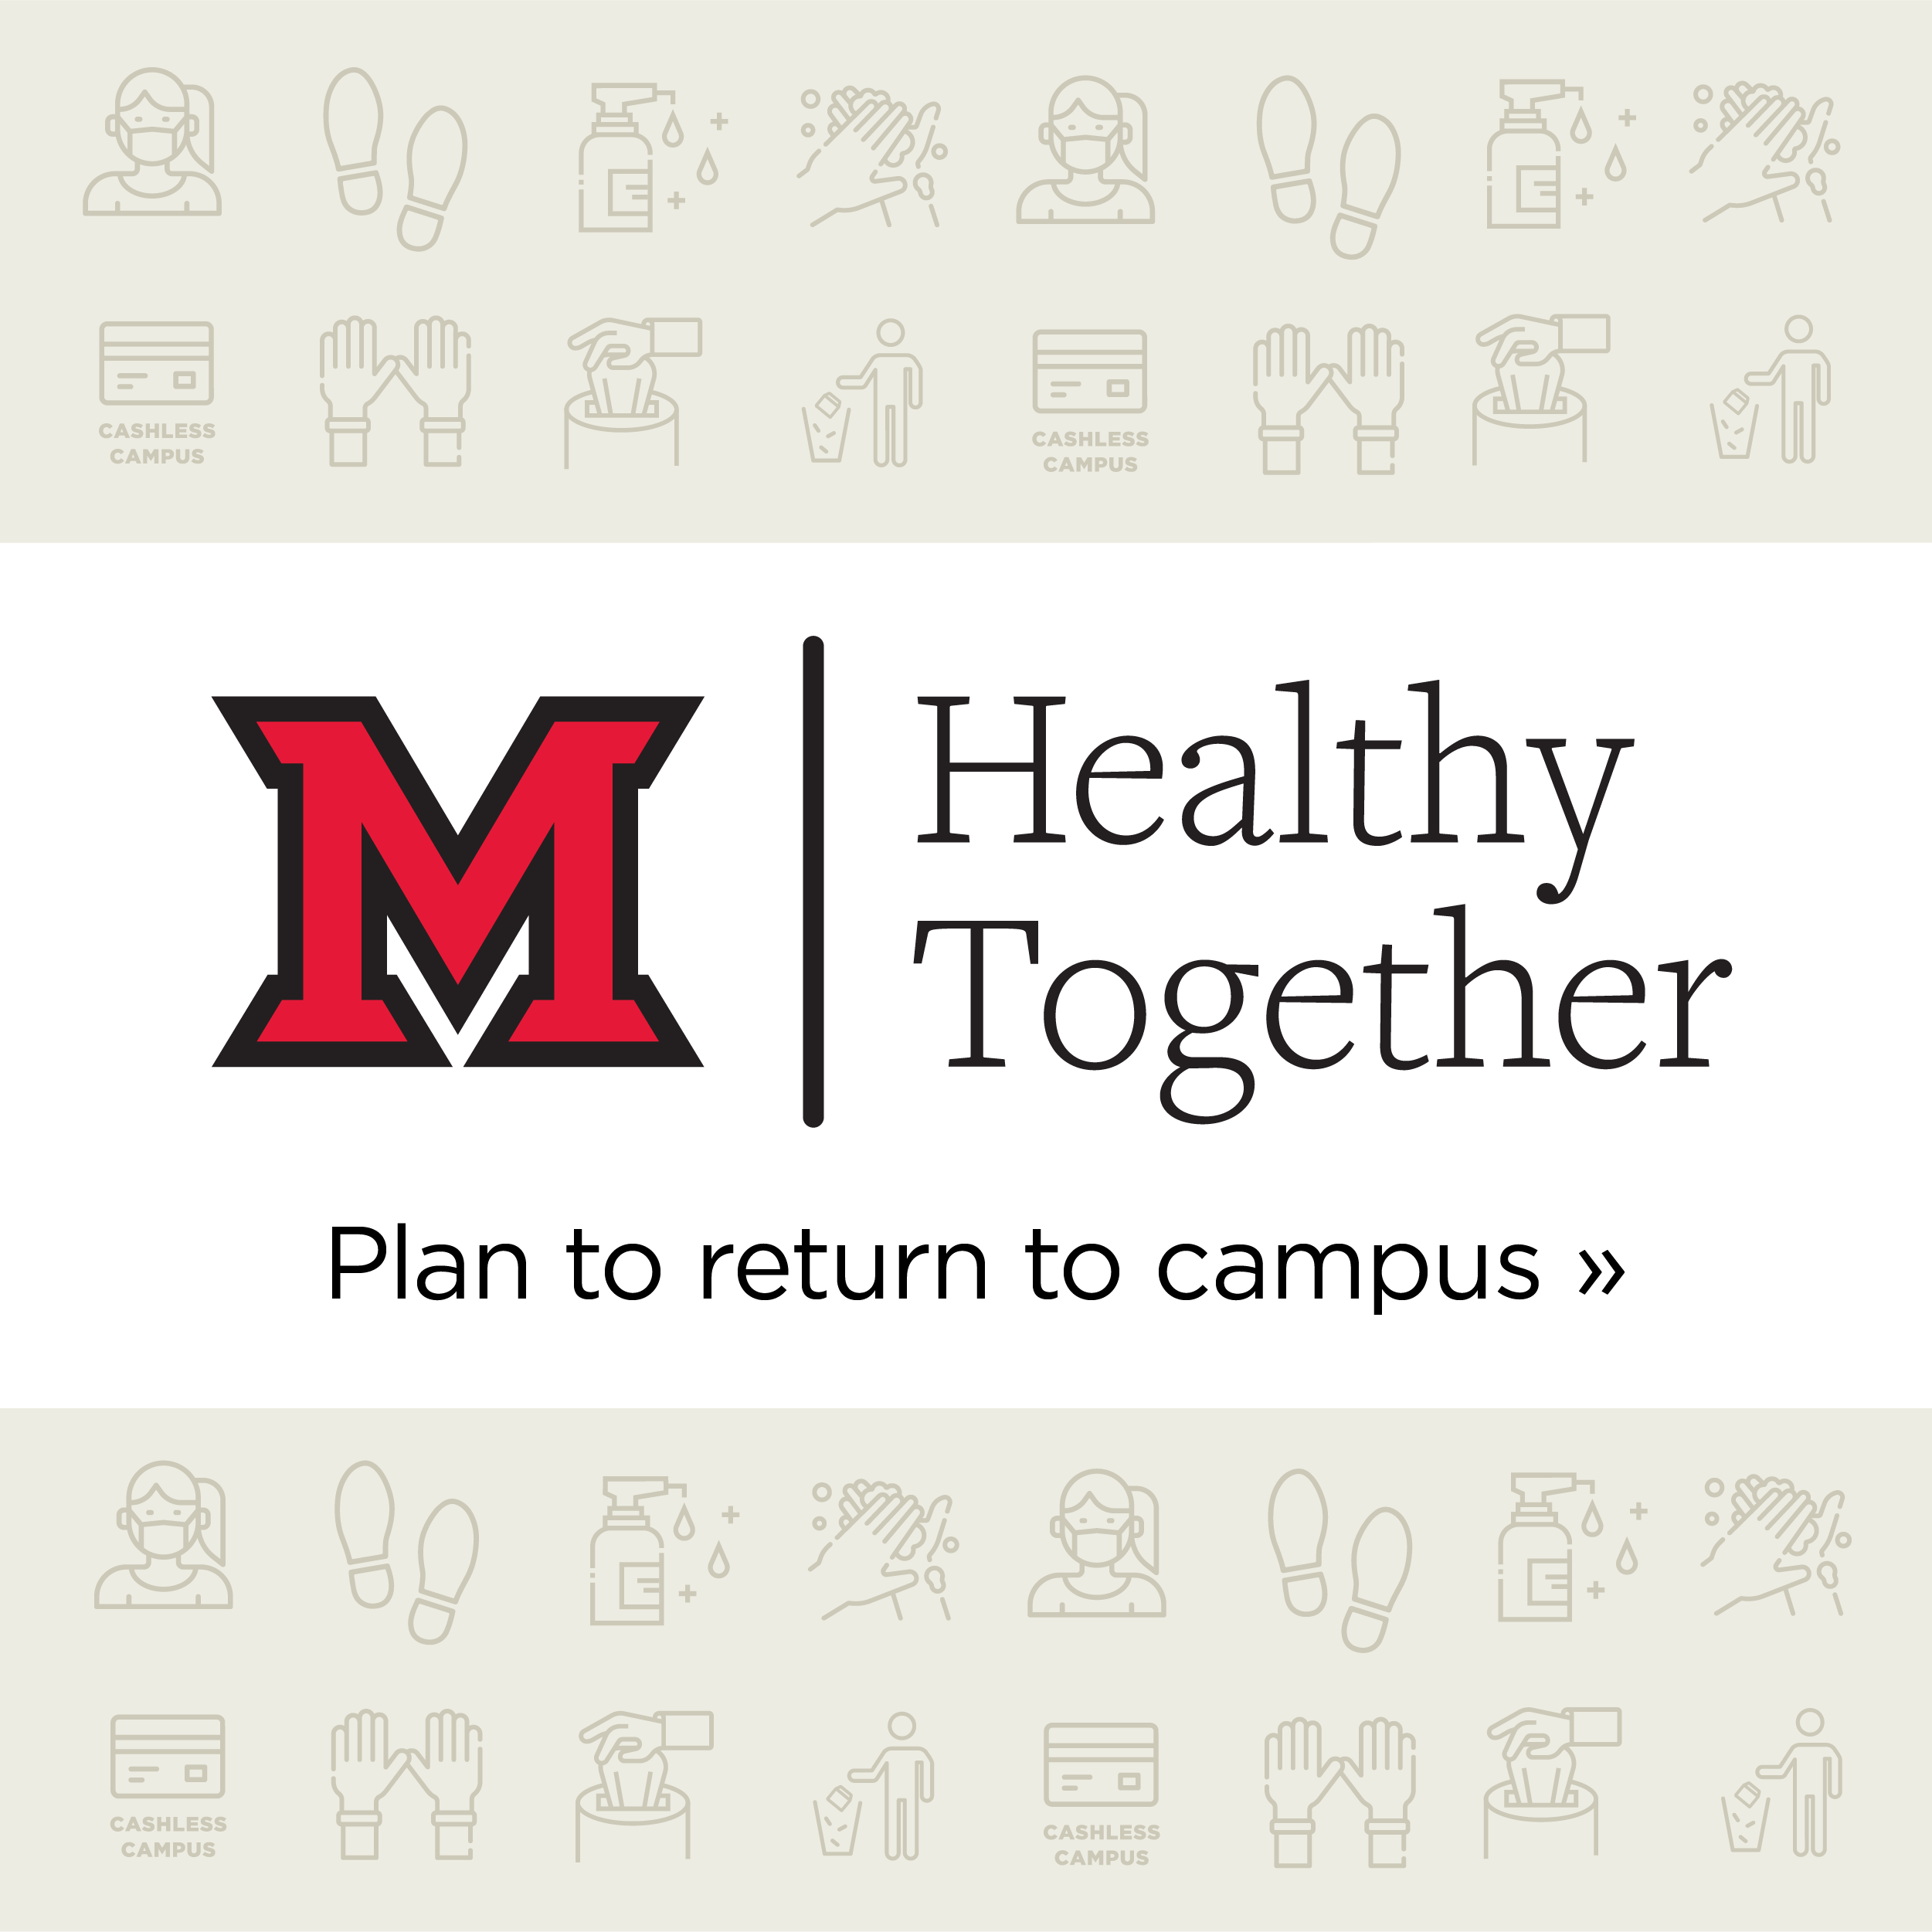 Health Together. Plan to return to campus.